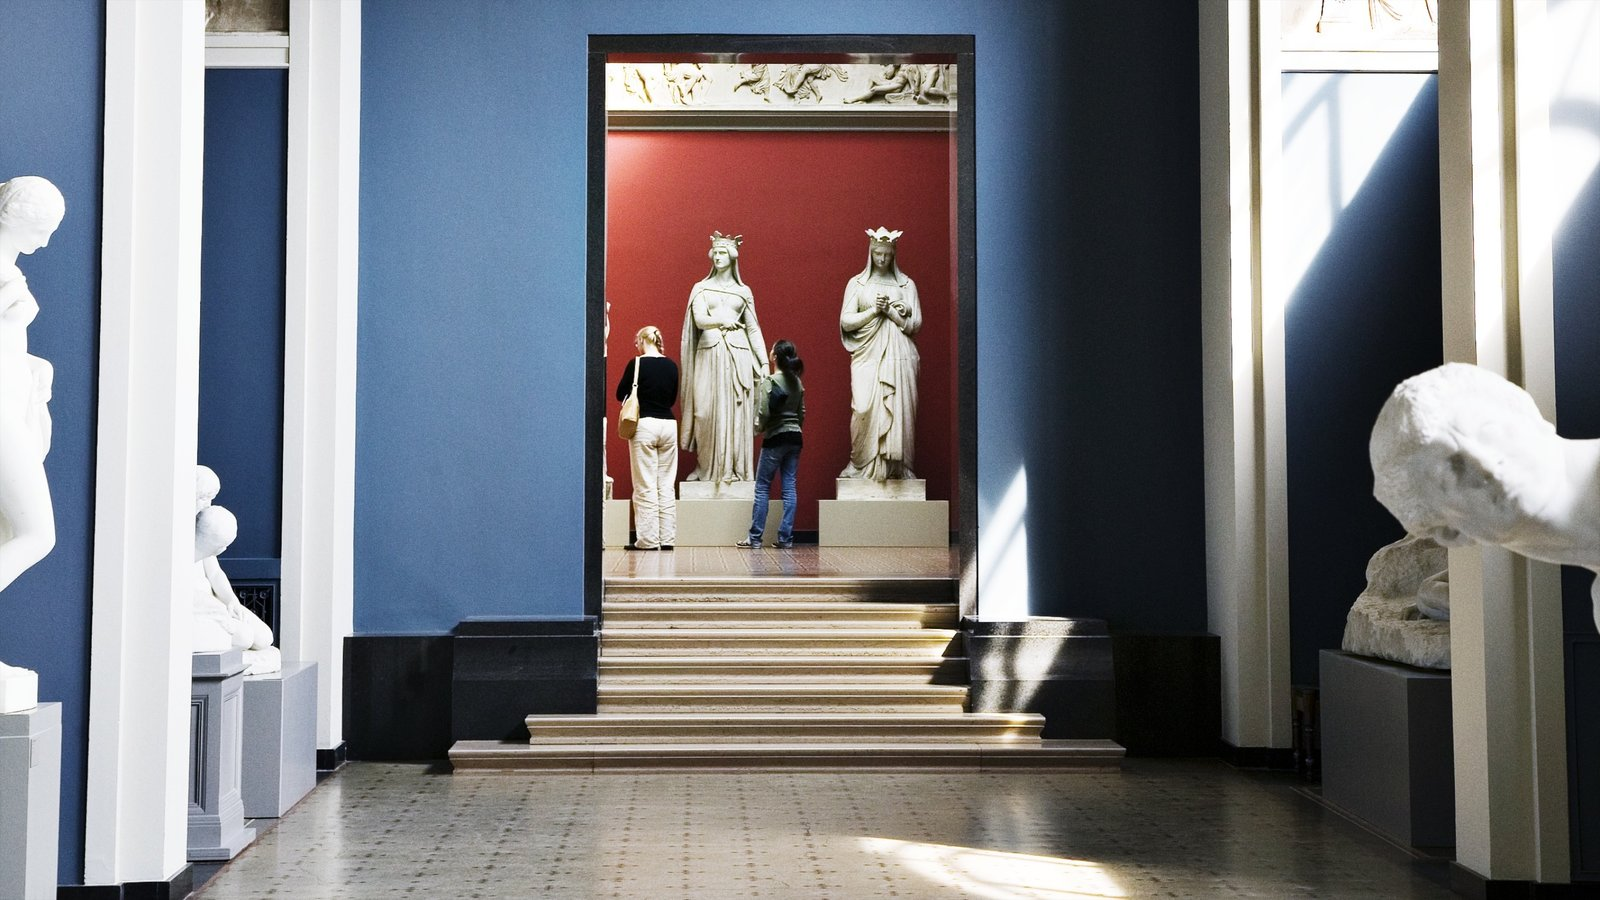 Ny Carlsberg Glyptotek which includes a statue or sculpture and interior views